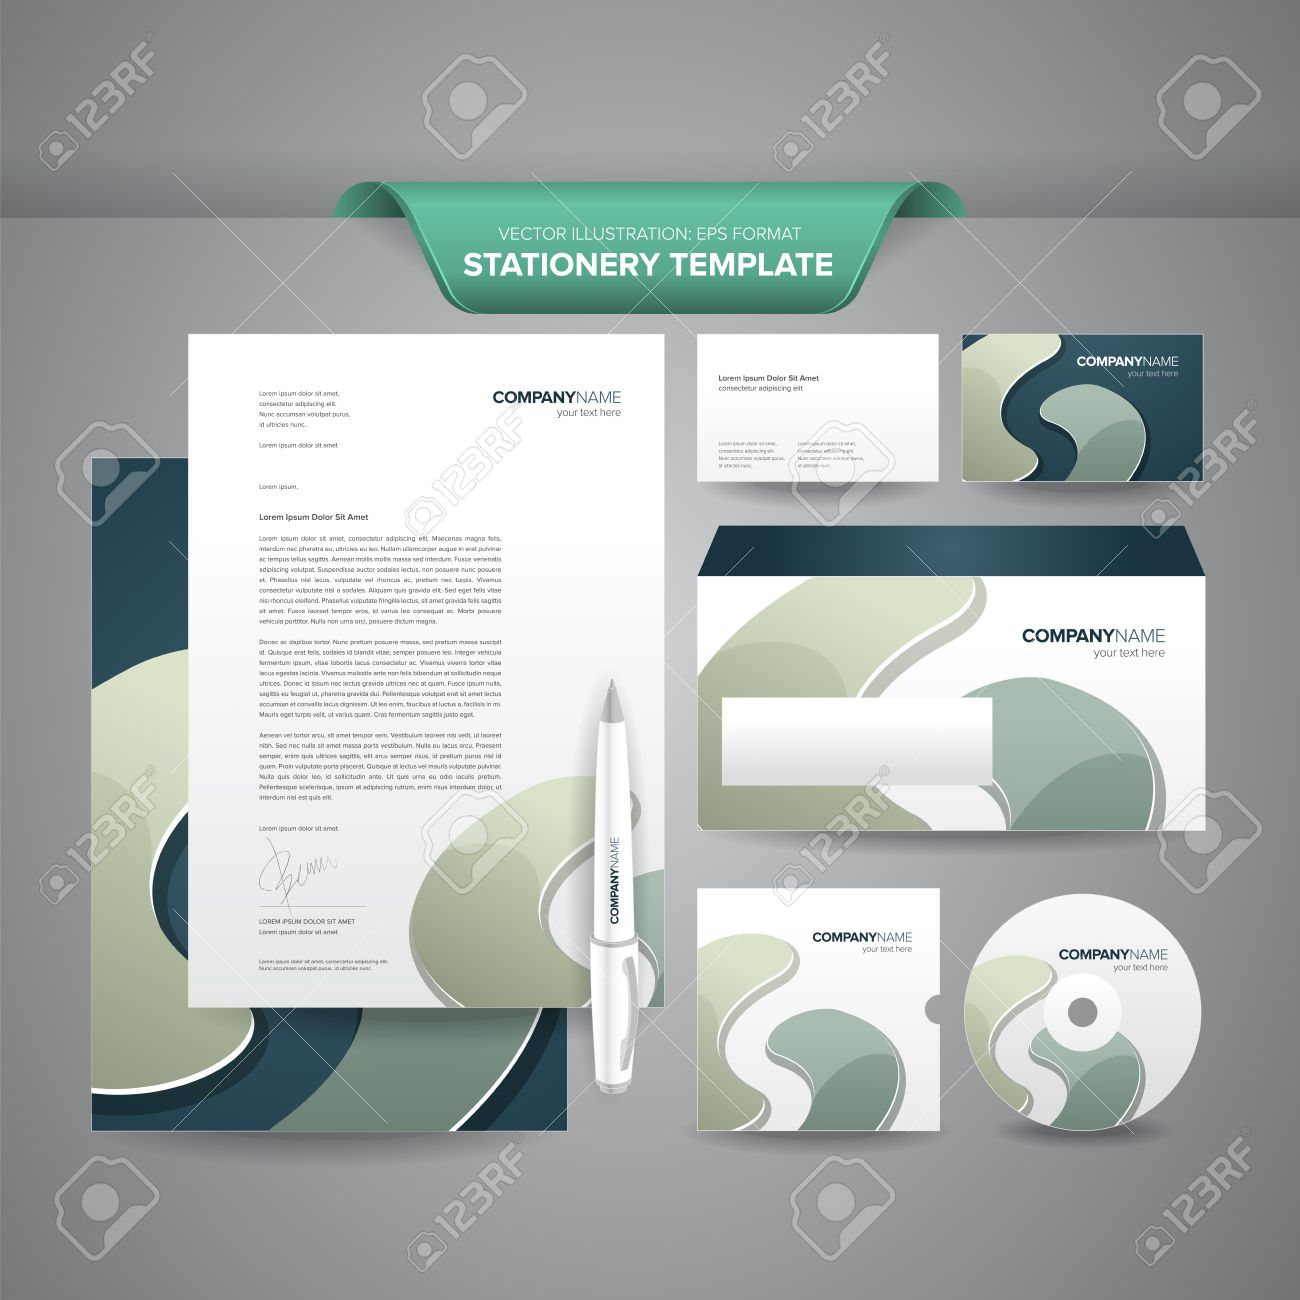 complete set of business stationery templates such as letterhead envelope business card etc